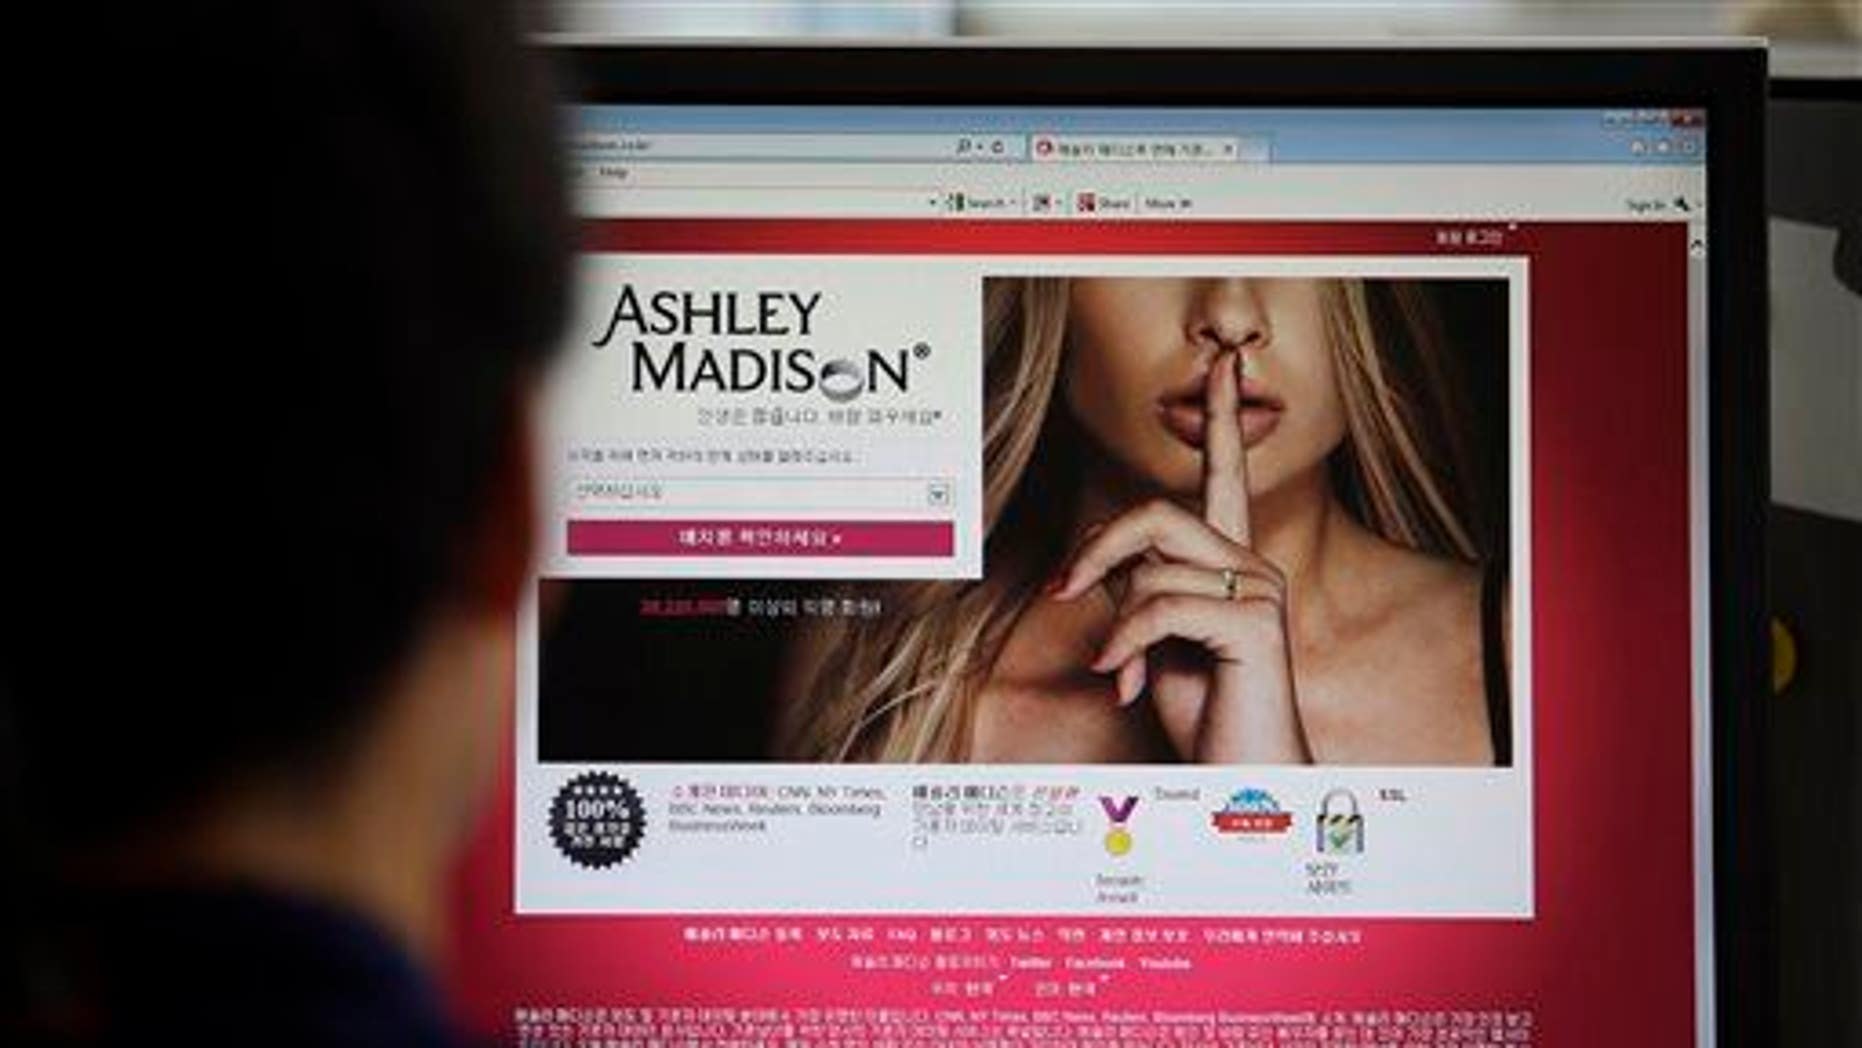 FILE - In this June 10, 2015 photo, Ashley Madison's Korean web site is shown on a computer screen in Seoul, South Korea. (AP Photo/Lee Jin-man, File)